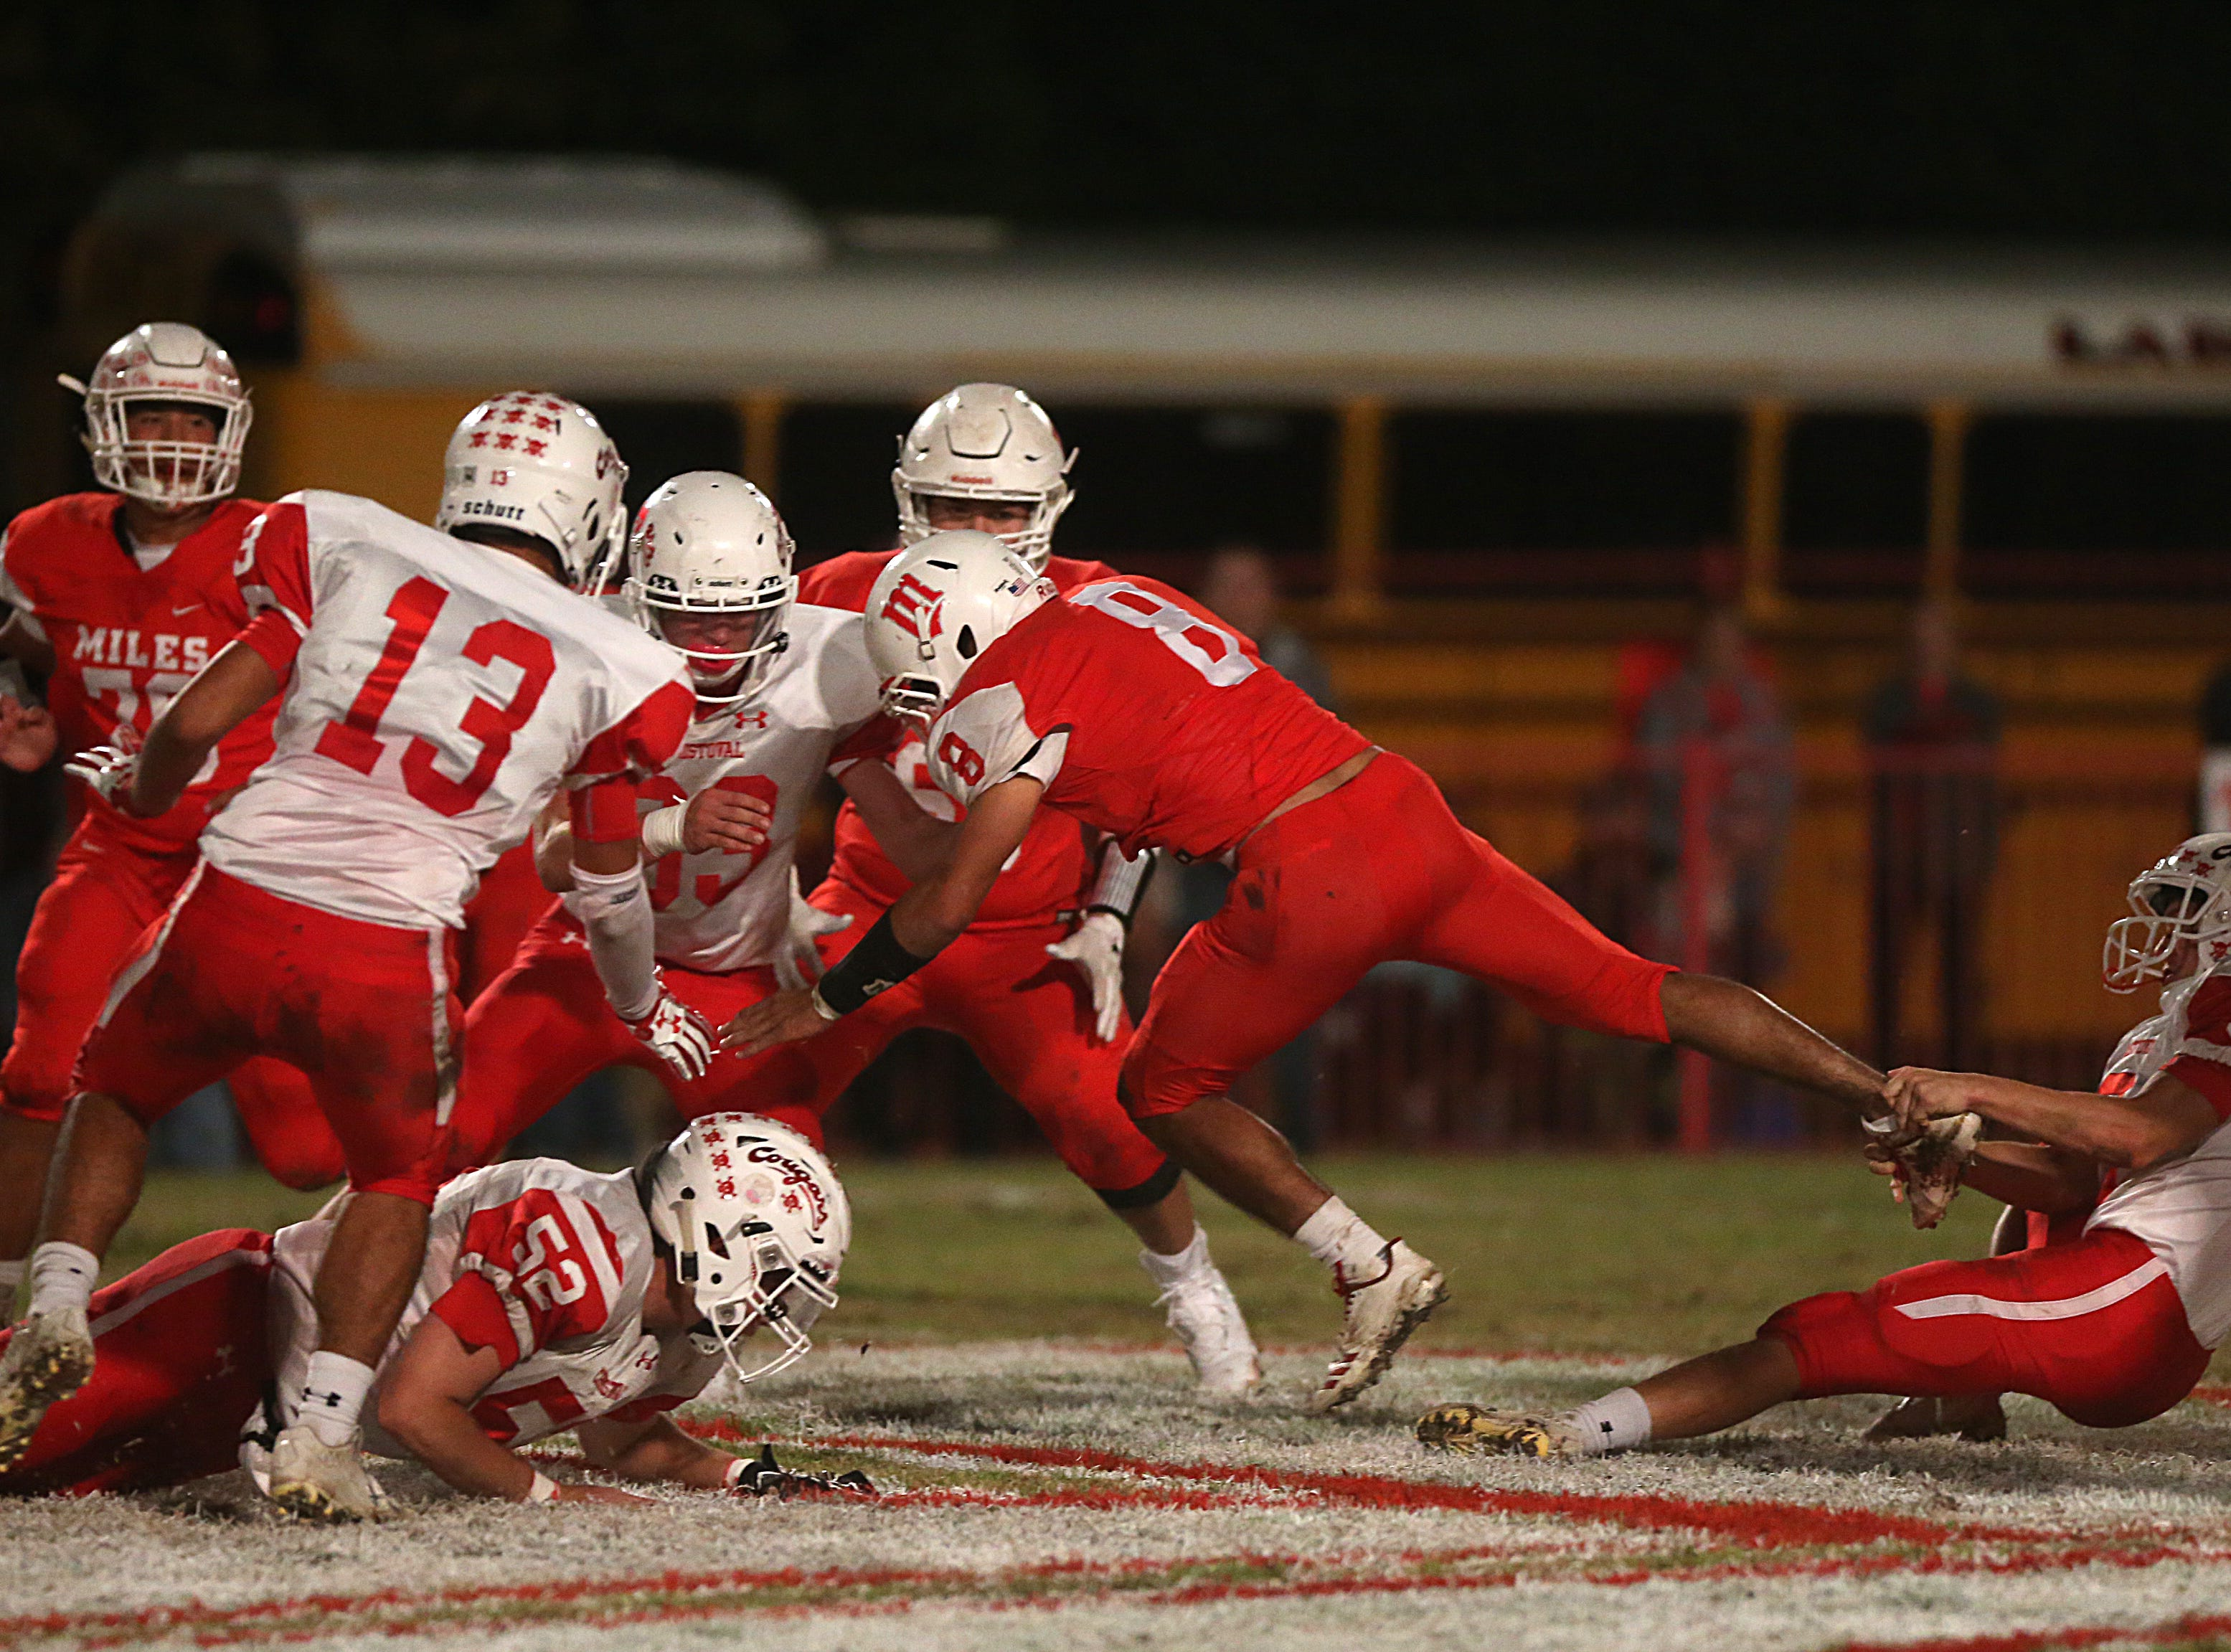 Miles' Jared Flores (#8) gets pulled down by Christoval's Luke Jolly (#9) Friday, Nov. 2, 2018 during their game in Miles.